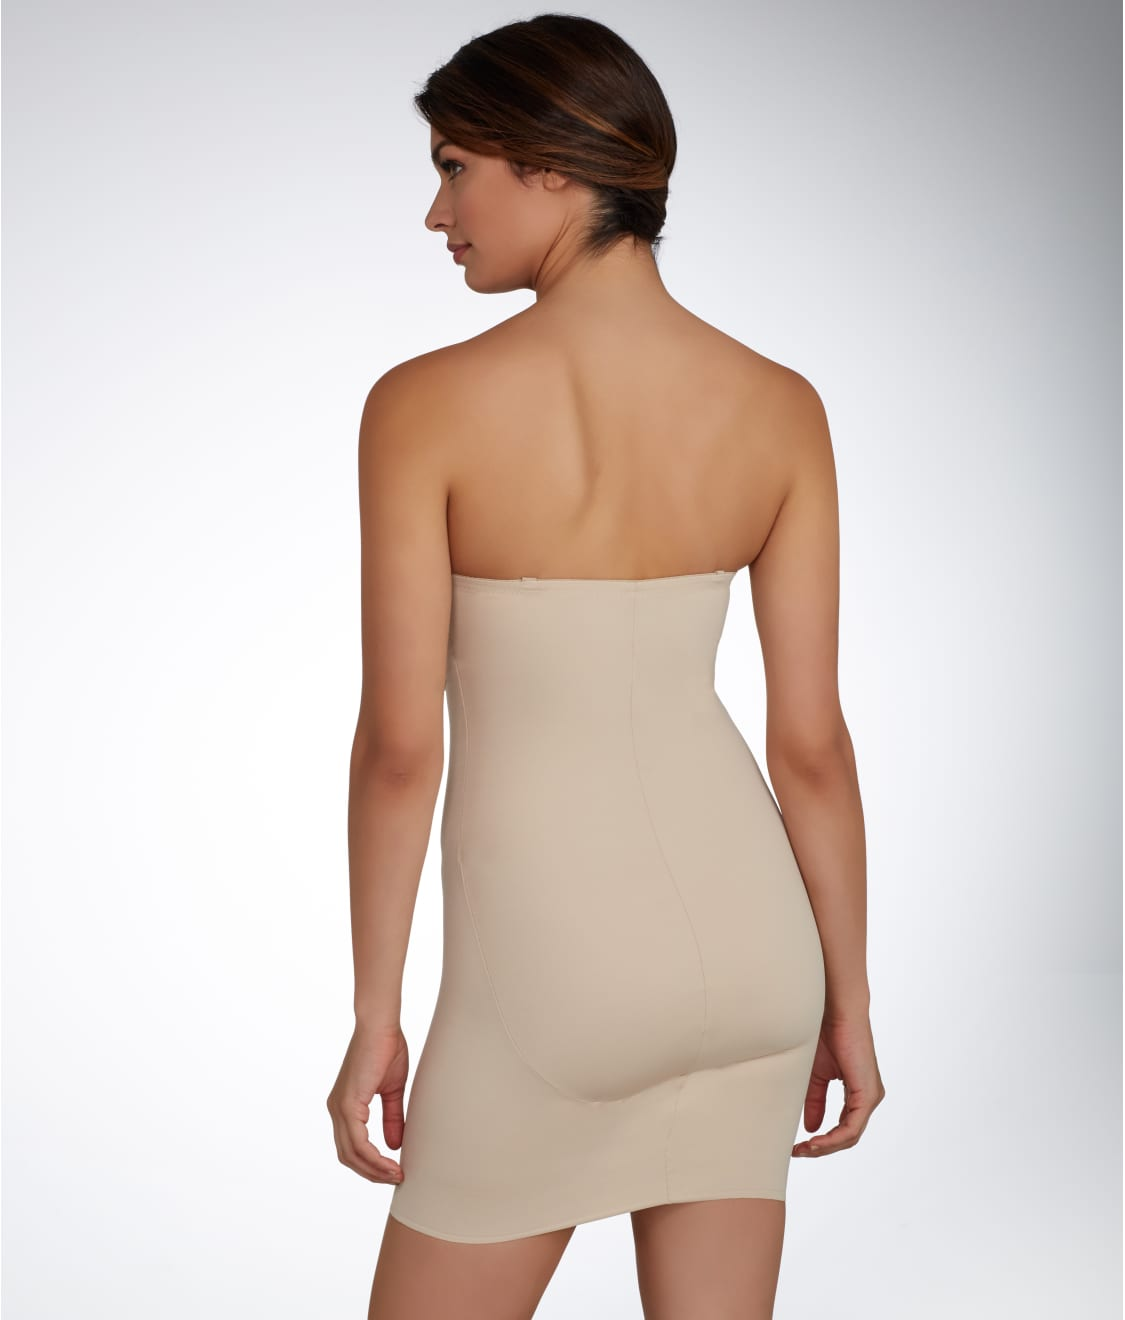 f4e40b2b1cf1d Miraclesuit Real Smooth Extra Firm Control Strapless Slip